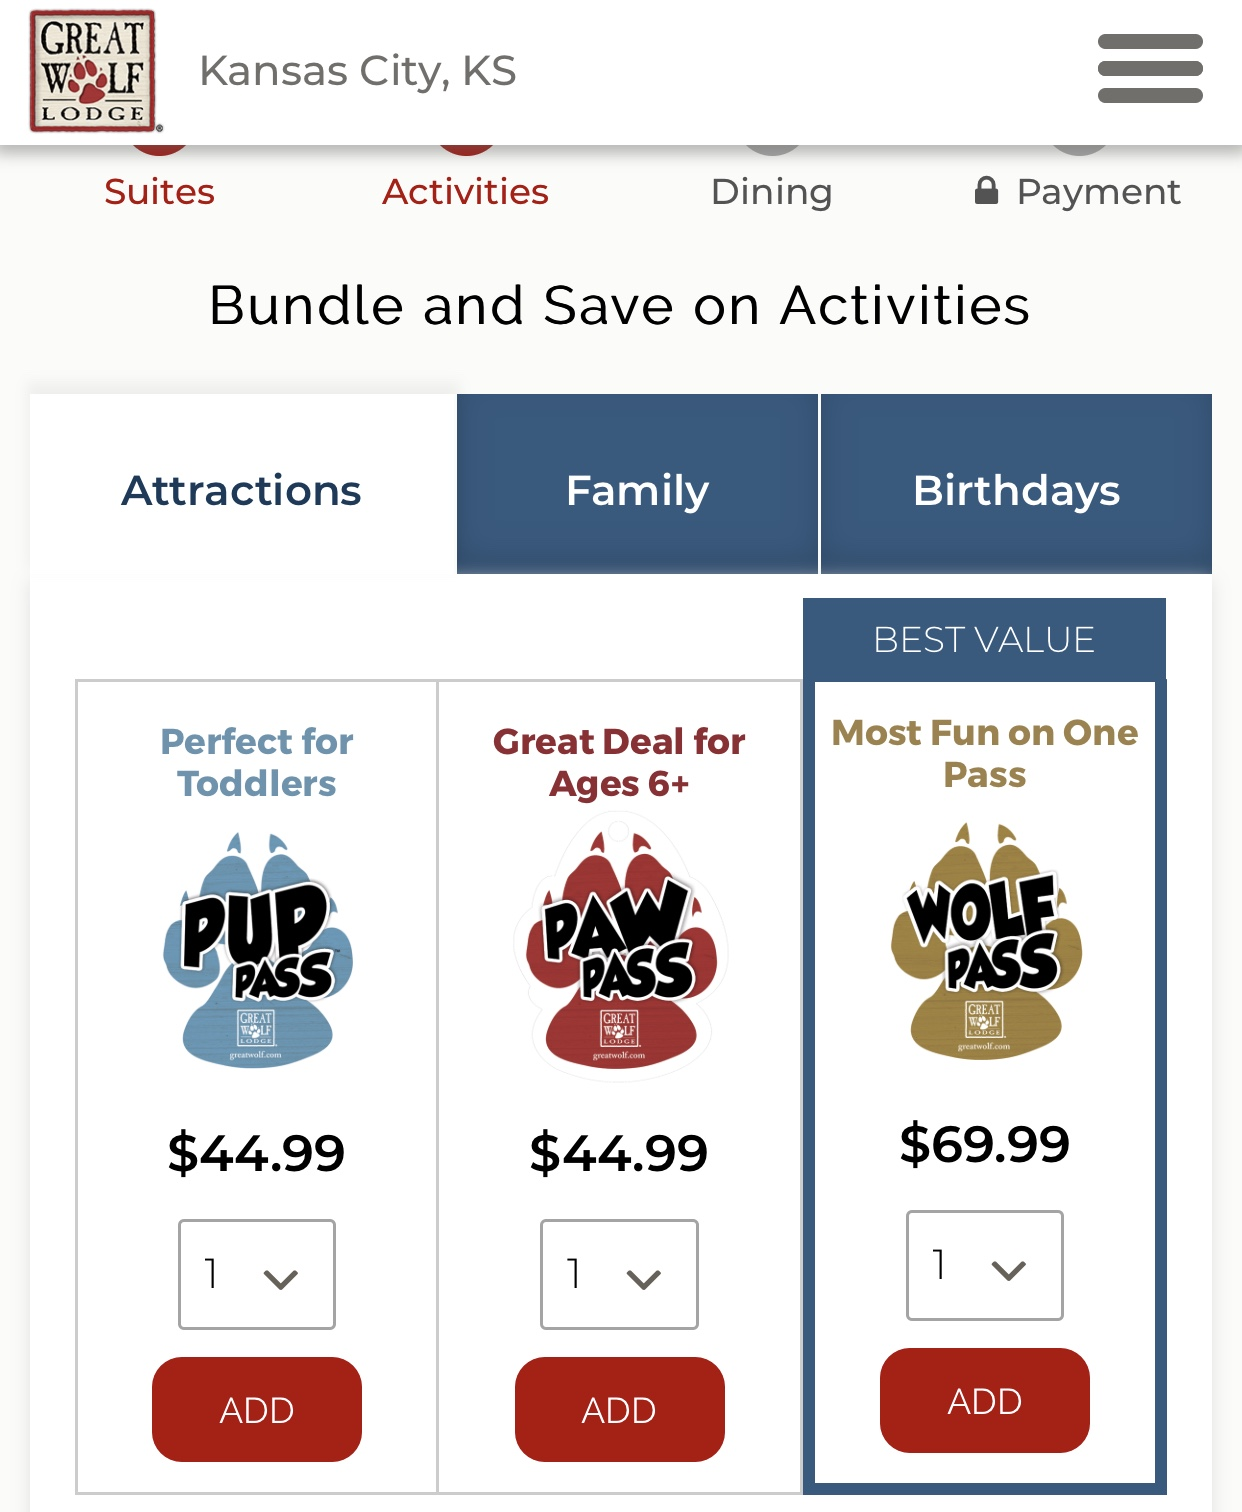 bundle savings at Great Wolf Lodge Kansas City